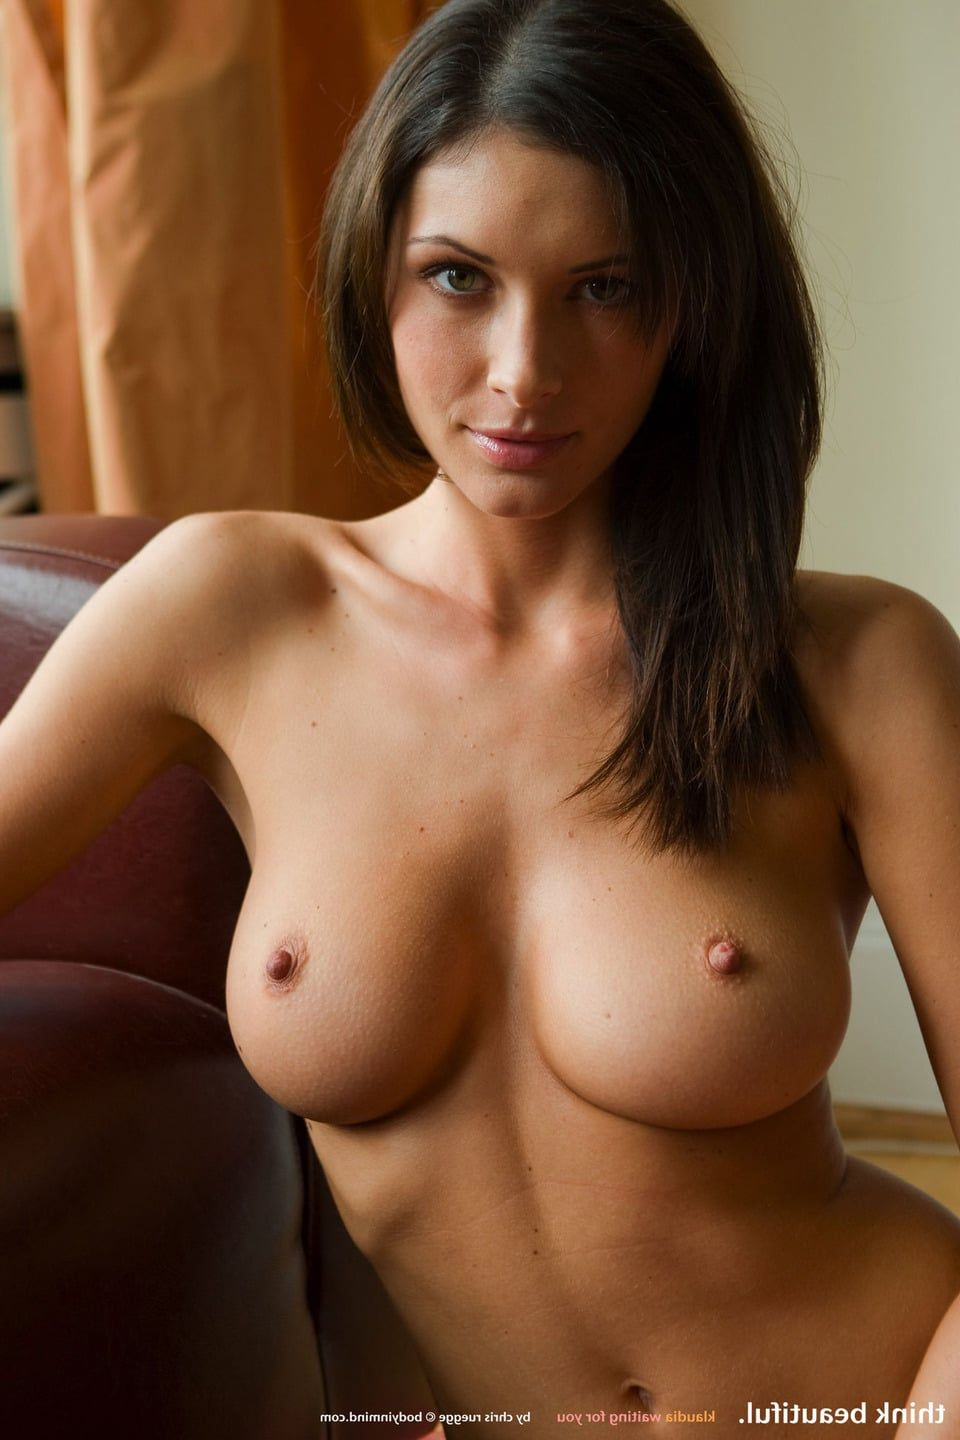 Big tits and small nipples